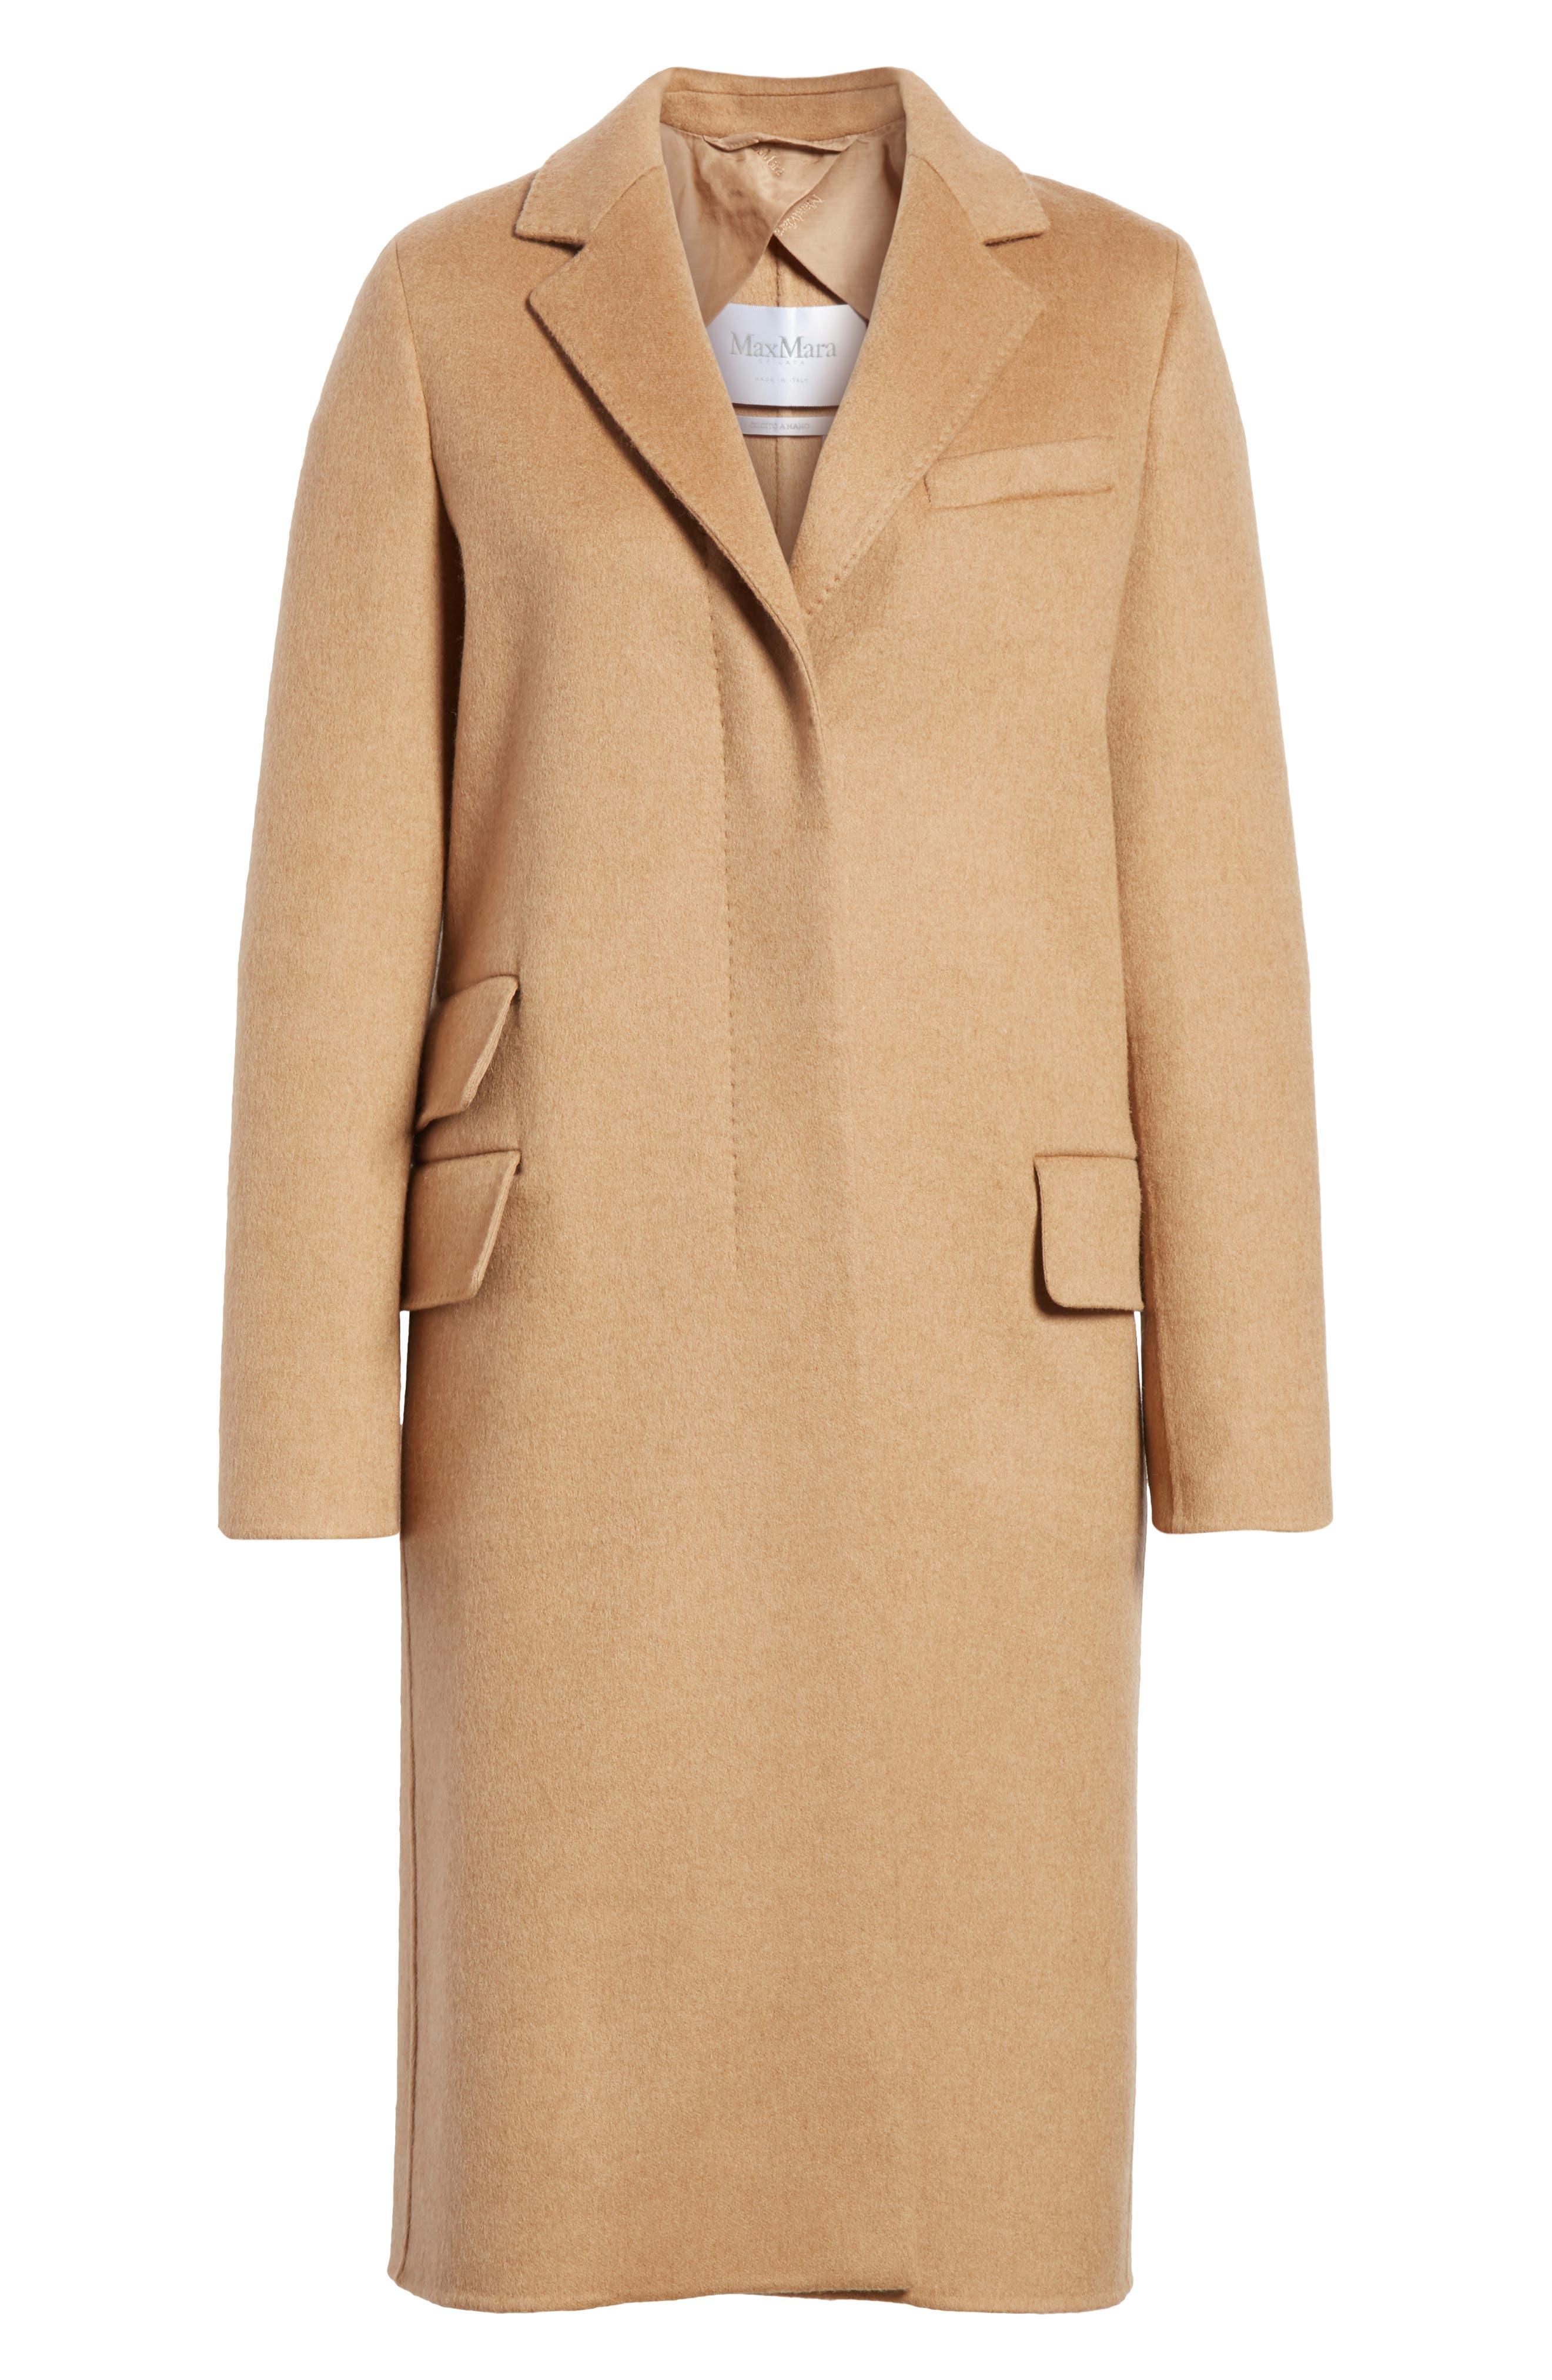 Aureo Camel Hair Coat,                             Alternate thumbnail 5, color,                             232